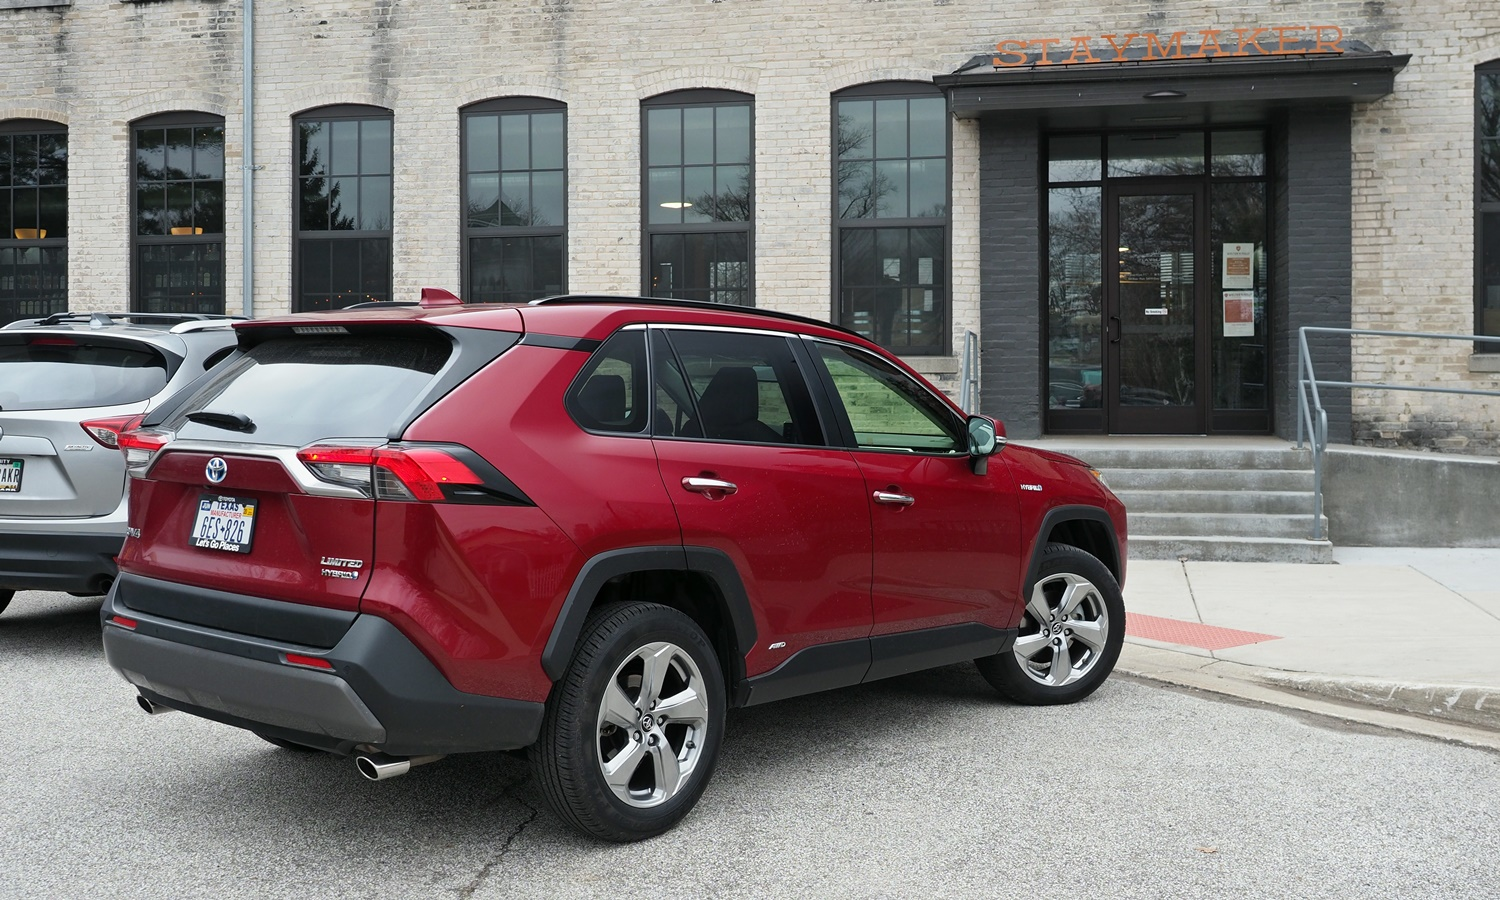 RAV4 Reviews: 2019 Toyota RAV4 rear angle view